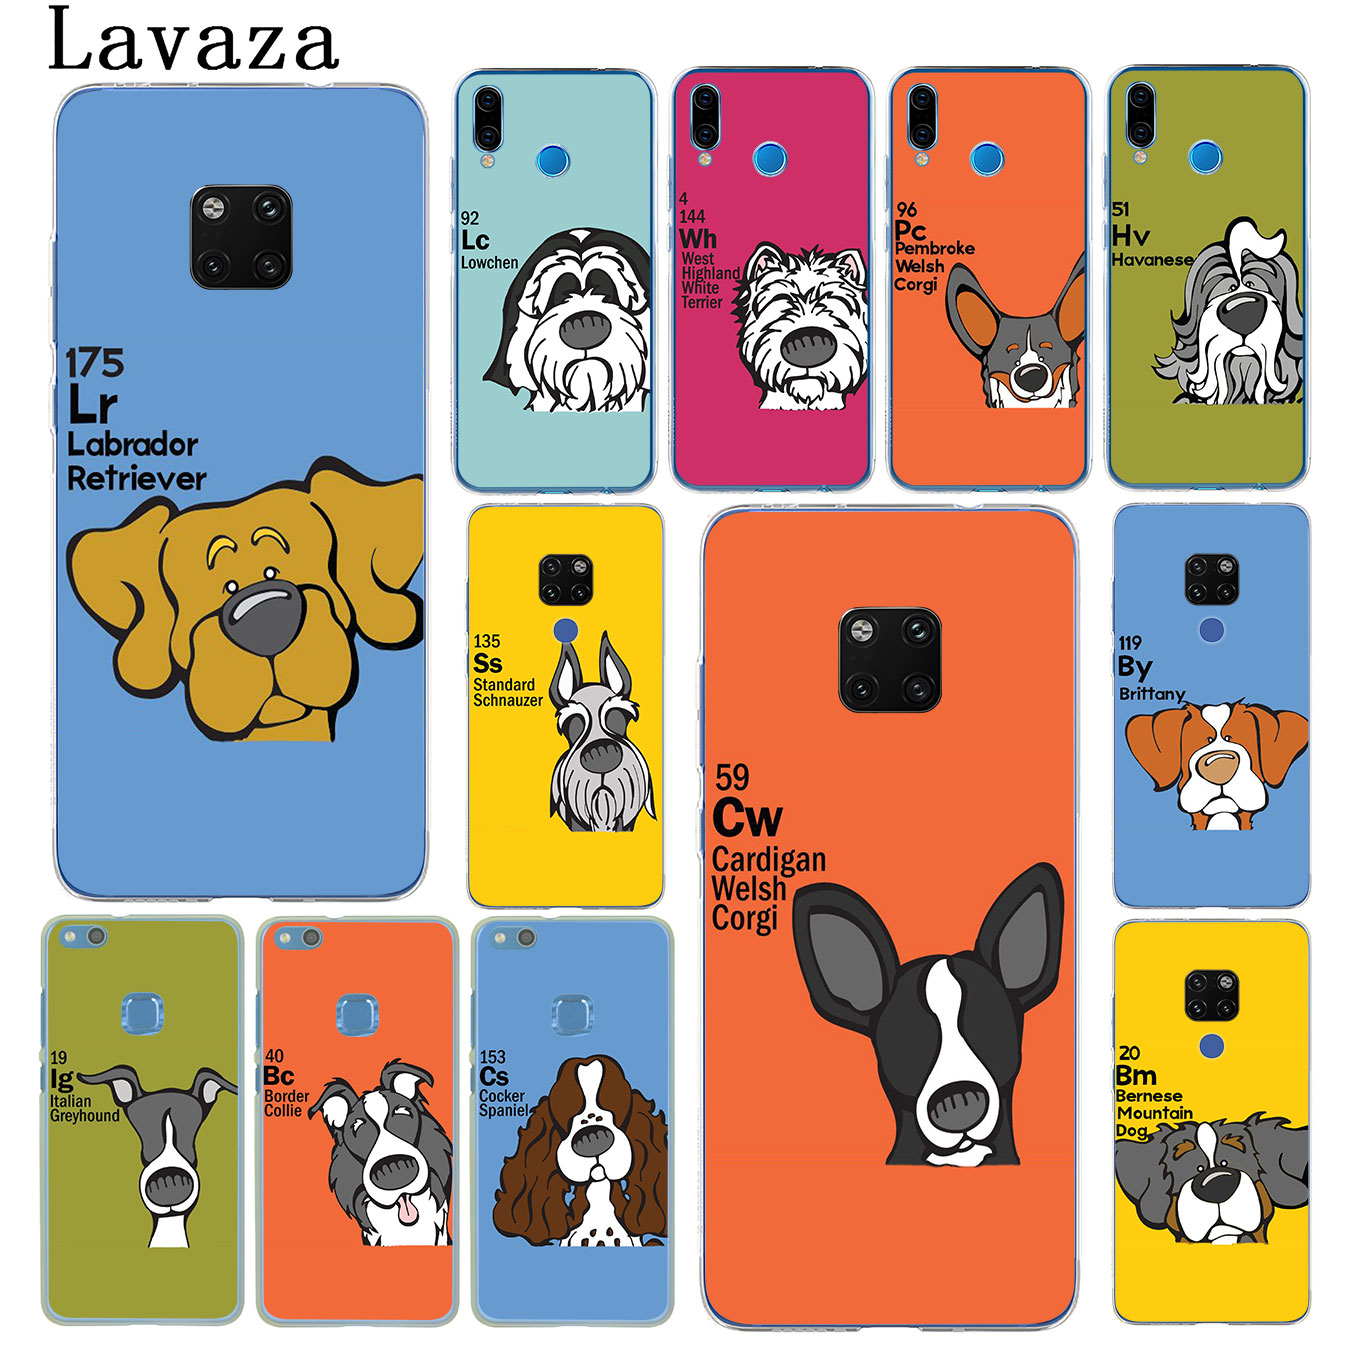 Lavaza Periodic table of ele ments dog Phone Case for Huawei Nova 5i 4 3i 3 2i Lite Cover for Huawei Mate 20 10 P20 Pro Lite